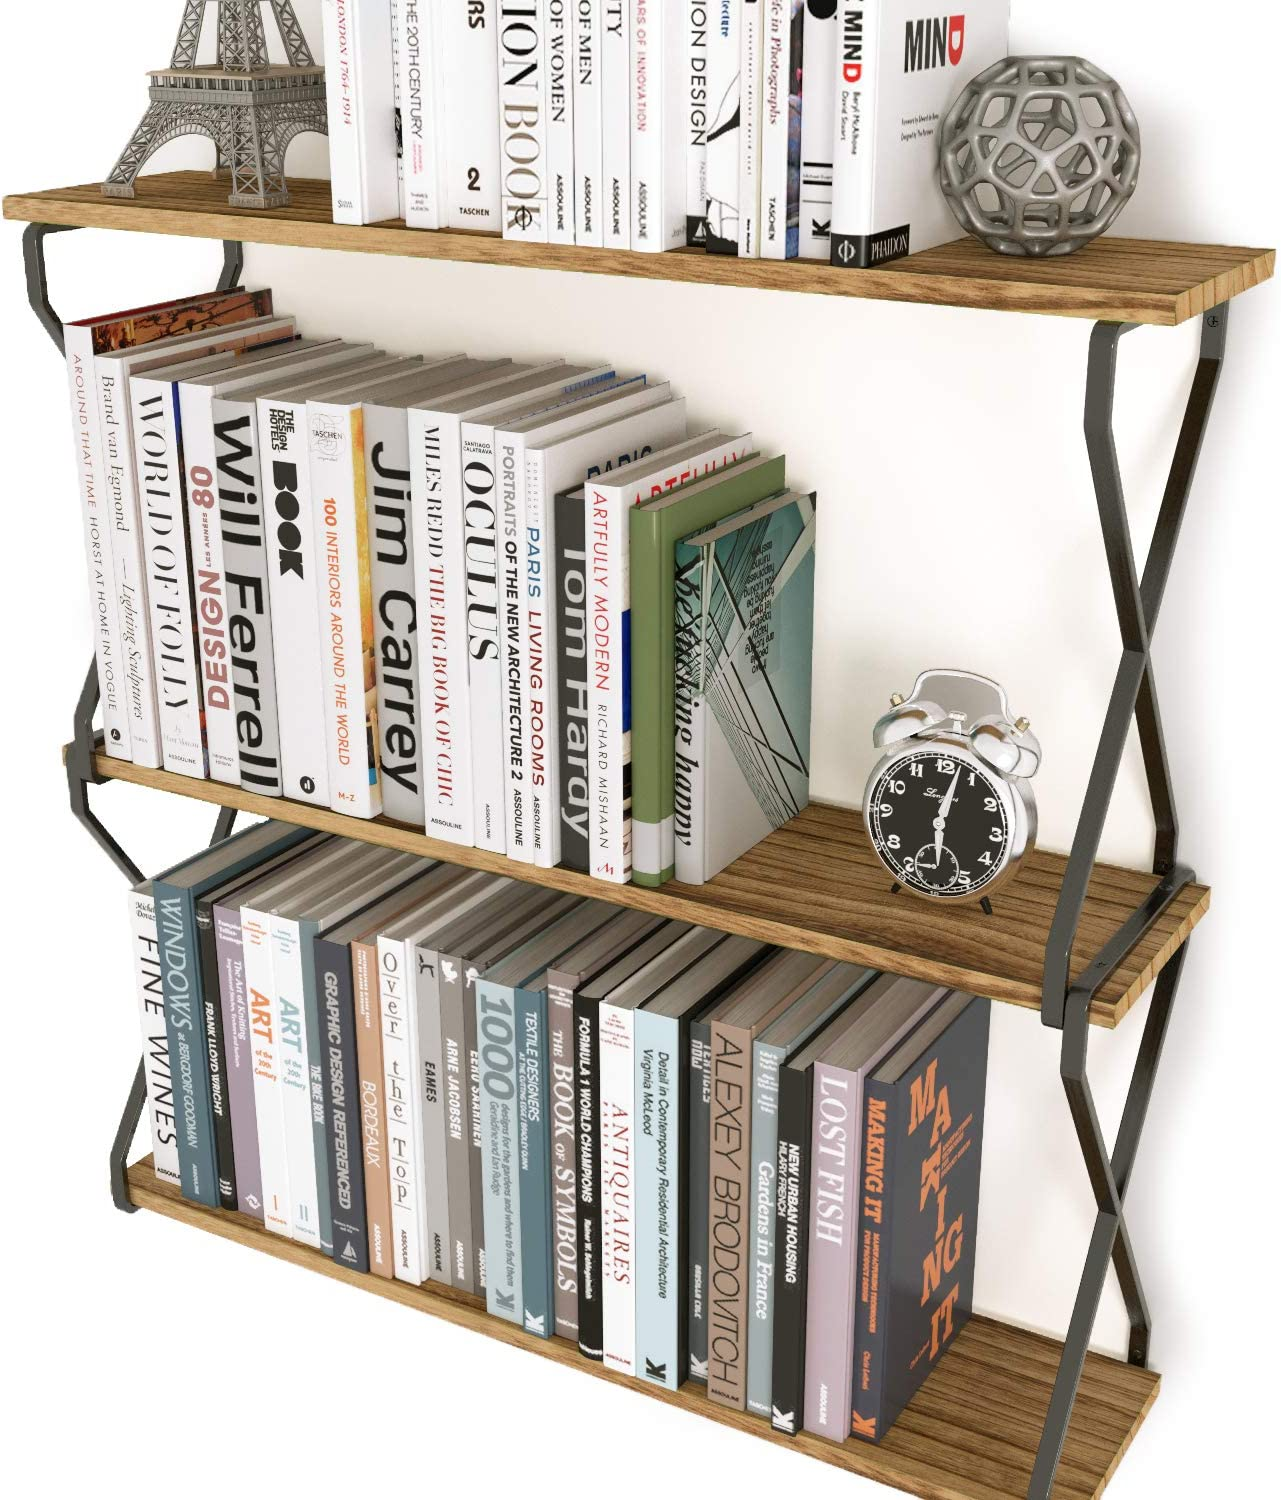 Wallniture Lucca 24 Inch Wooden Wall Shelf for Living Room Decor, 3 Tier Floating Shelves for Wall Natural Burned